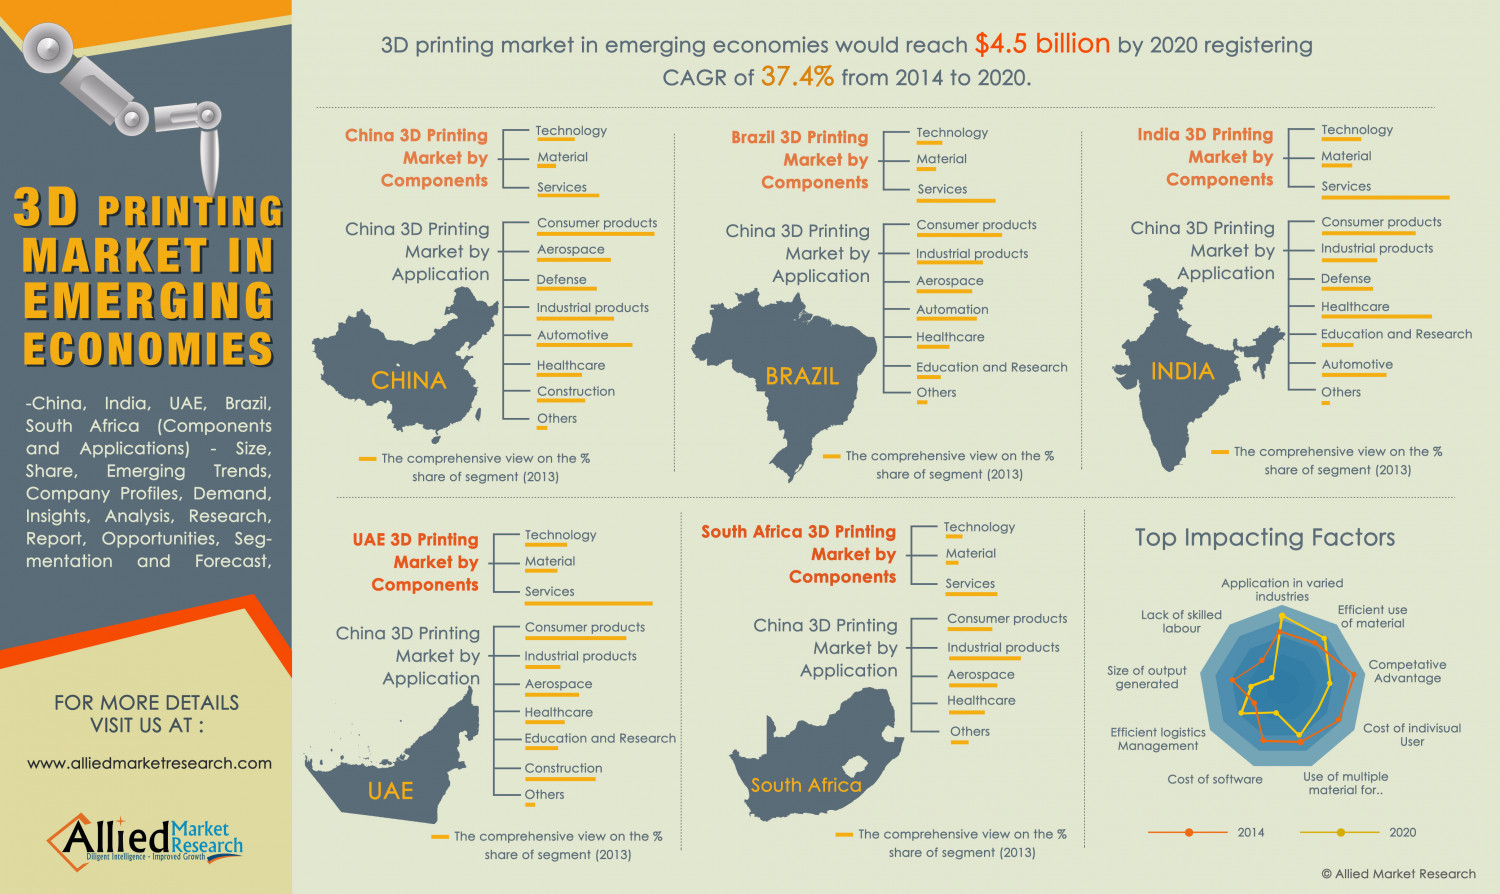 3D Printing Market in Emerging Economies Infographic